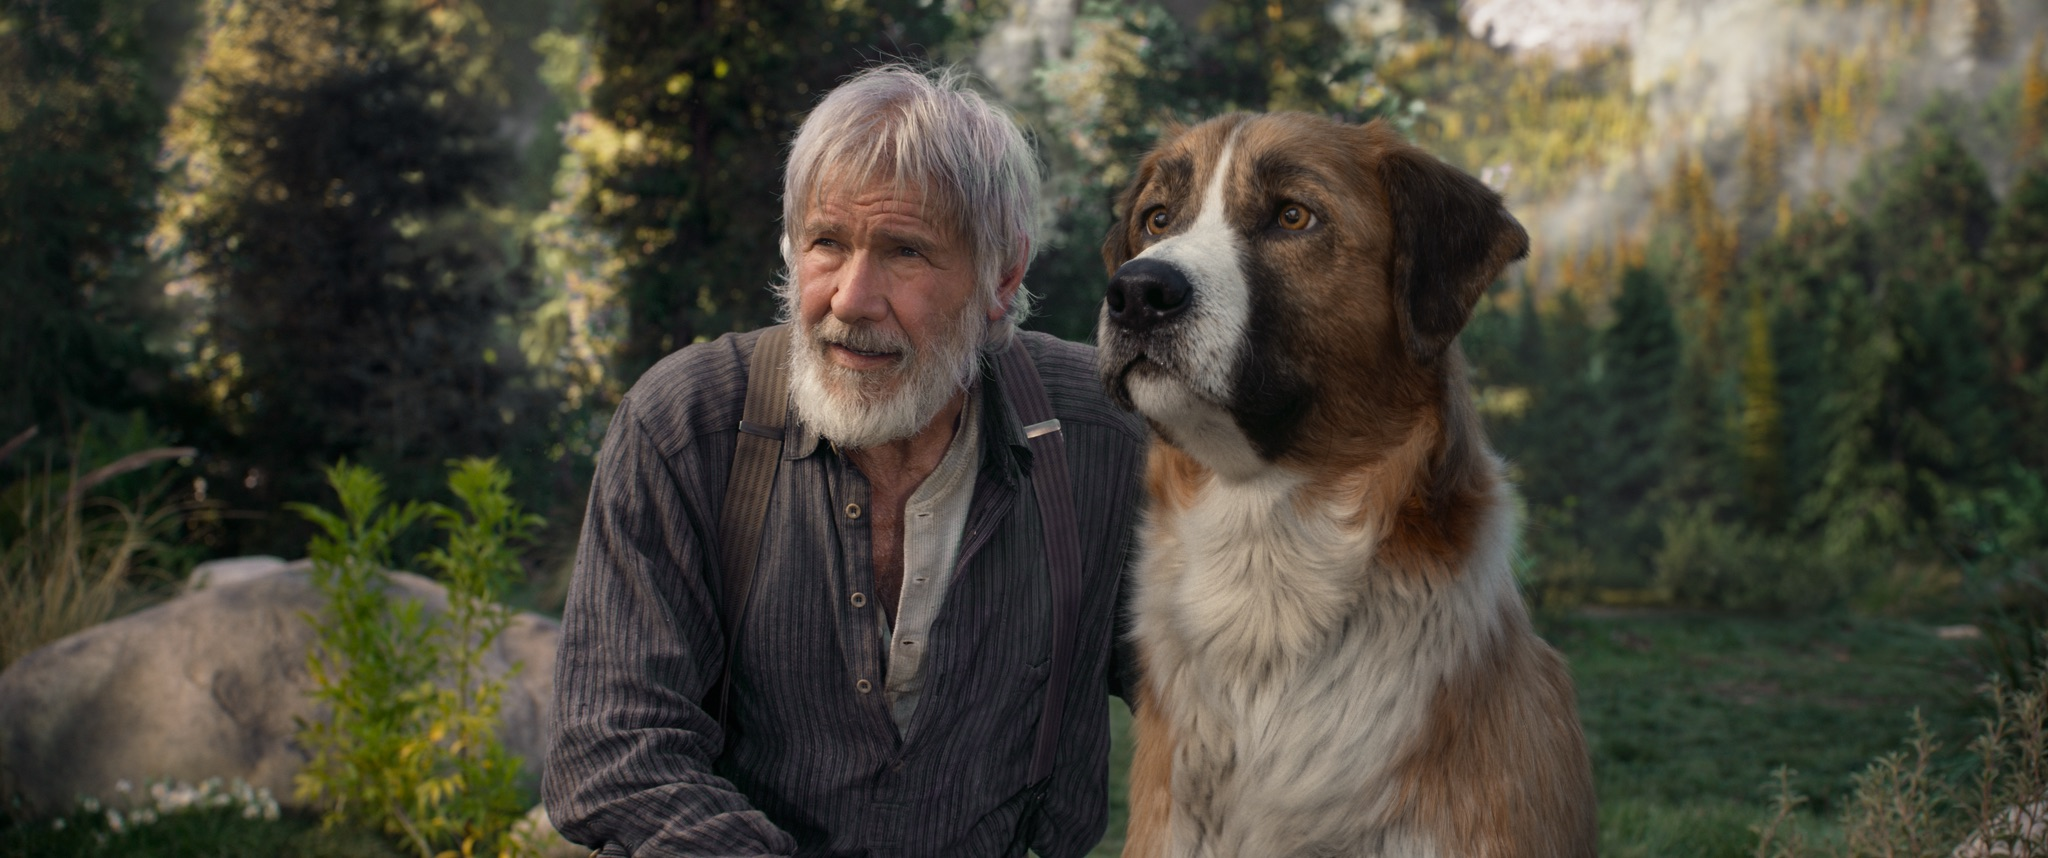 The CGI Dog Is Lovable Forever in 'The Call of the Wild'